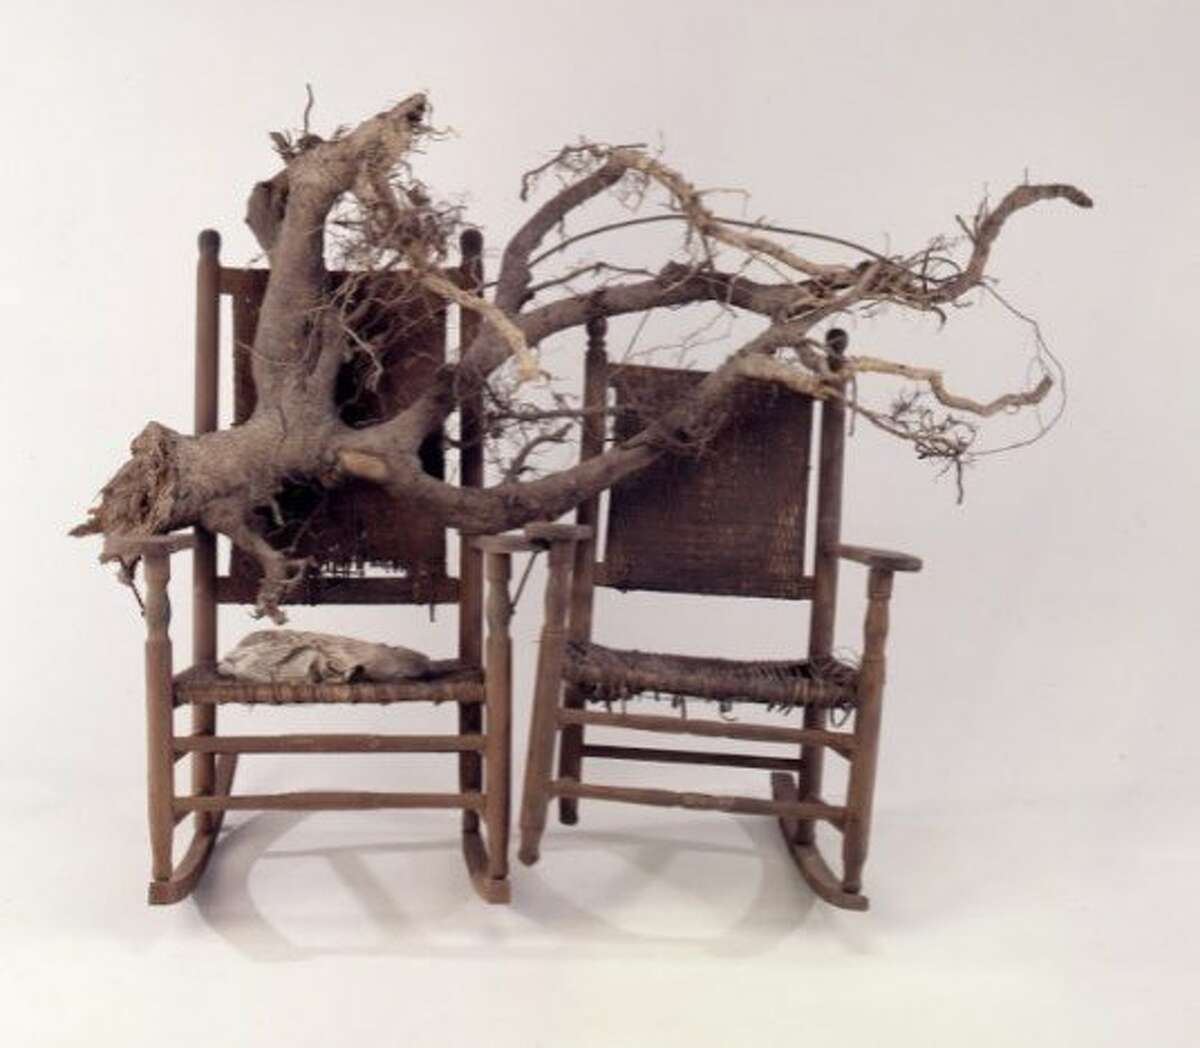 """Lonnie Holley's """"Him and Her Hold the Root,"""" a 1994 work in """"Revelations"""" at the de Young Museum"""